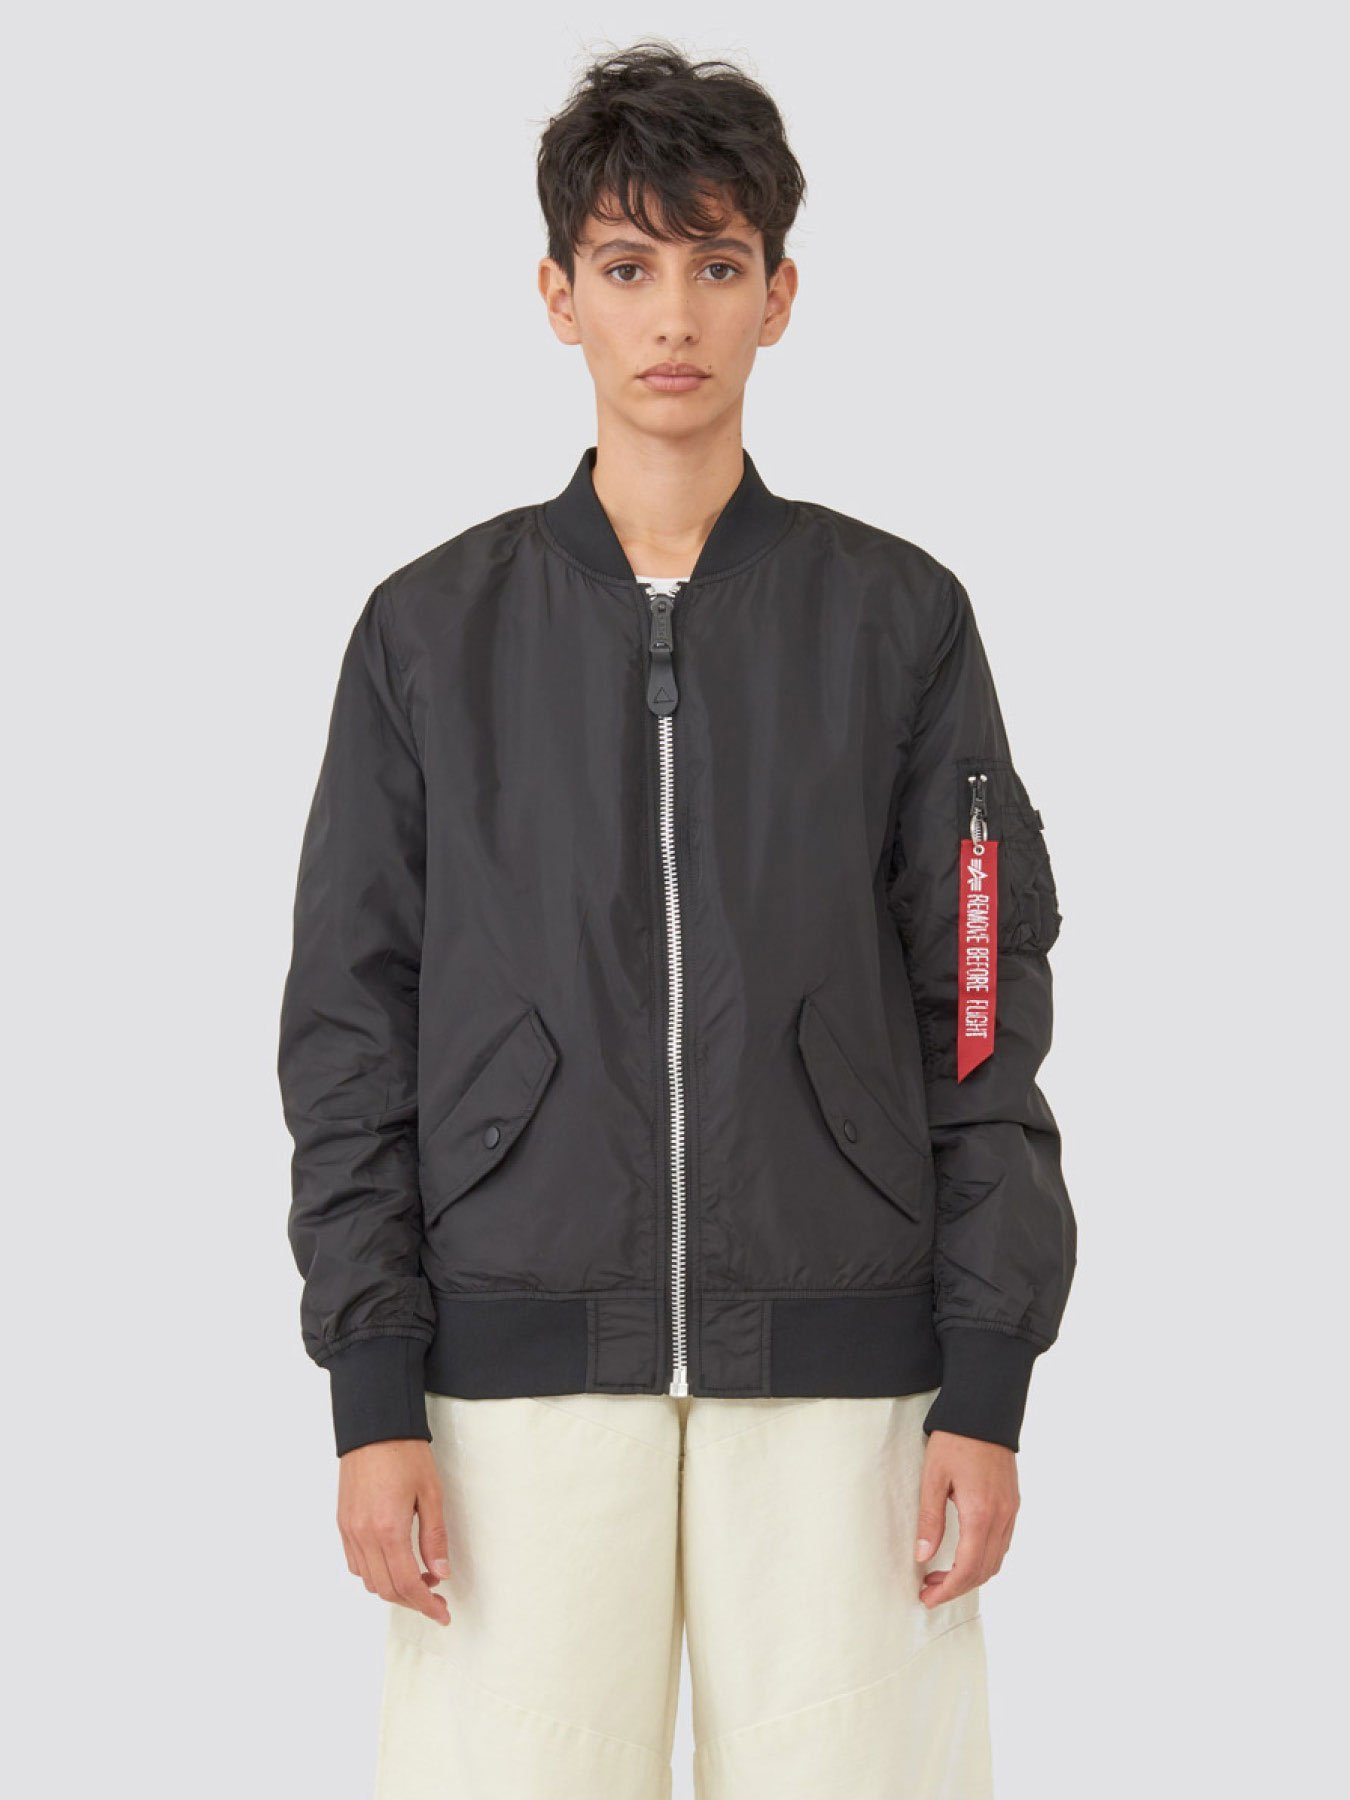 L-2B SCOUT W BOMBER JACKET OUTERWEAR Alpha Industries BLACK L